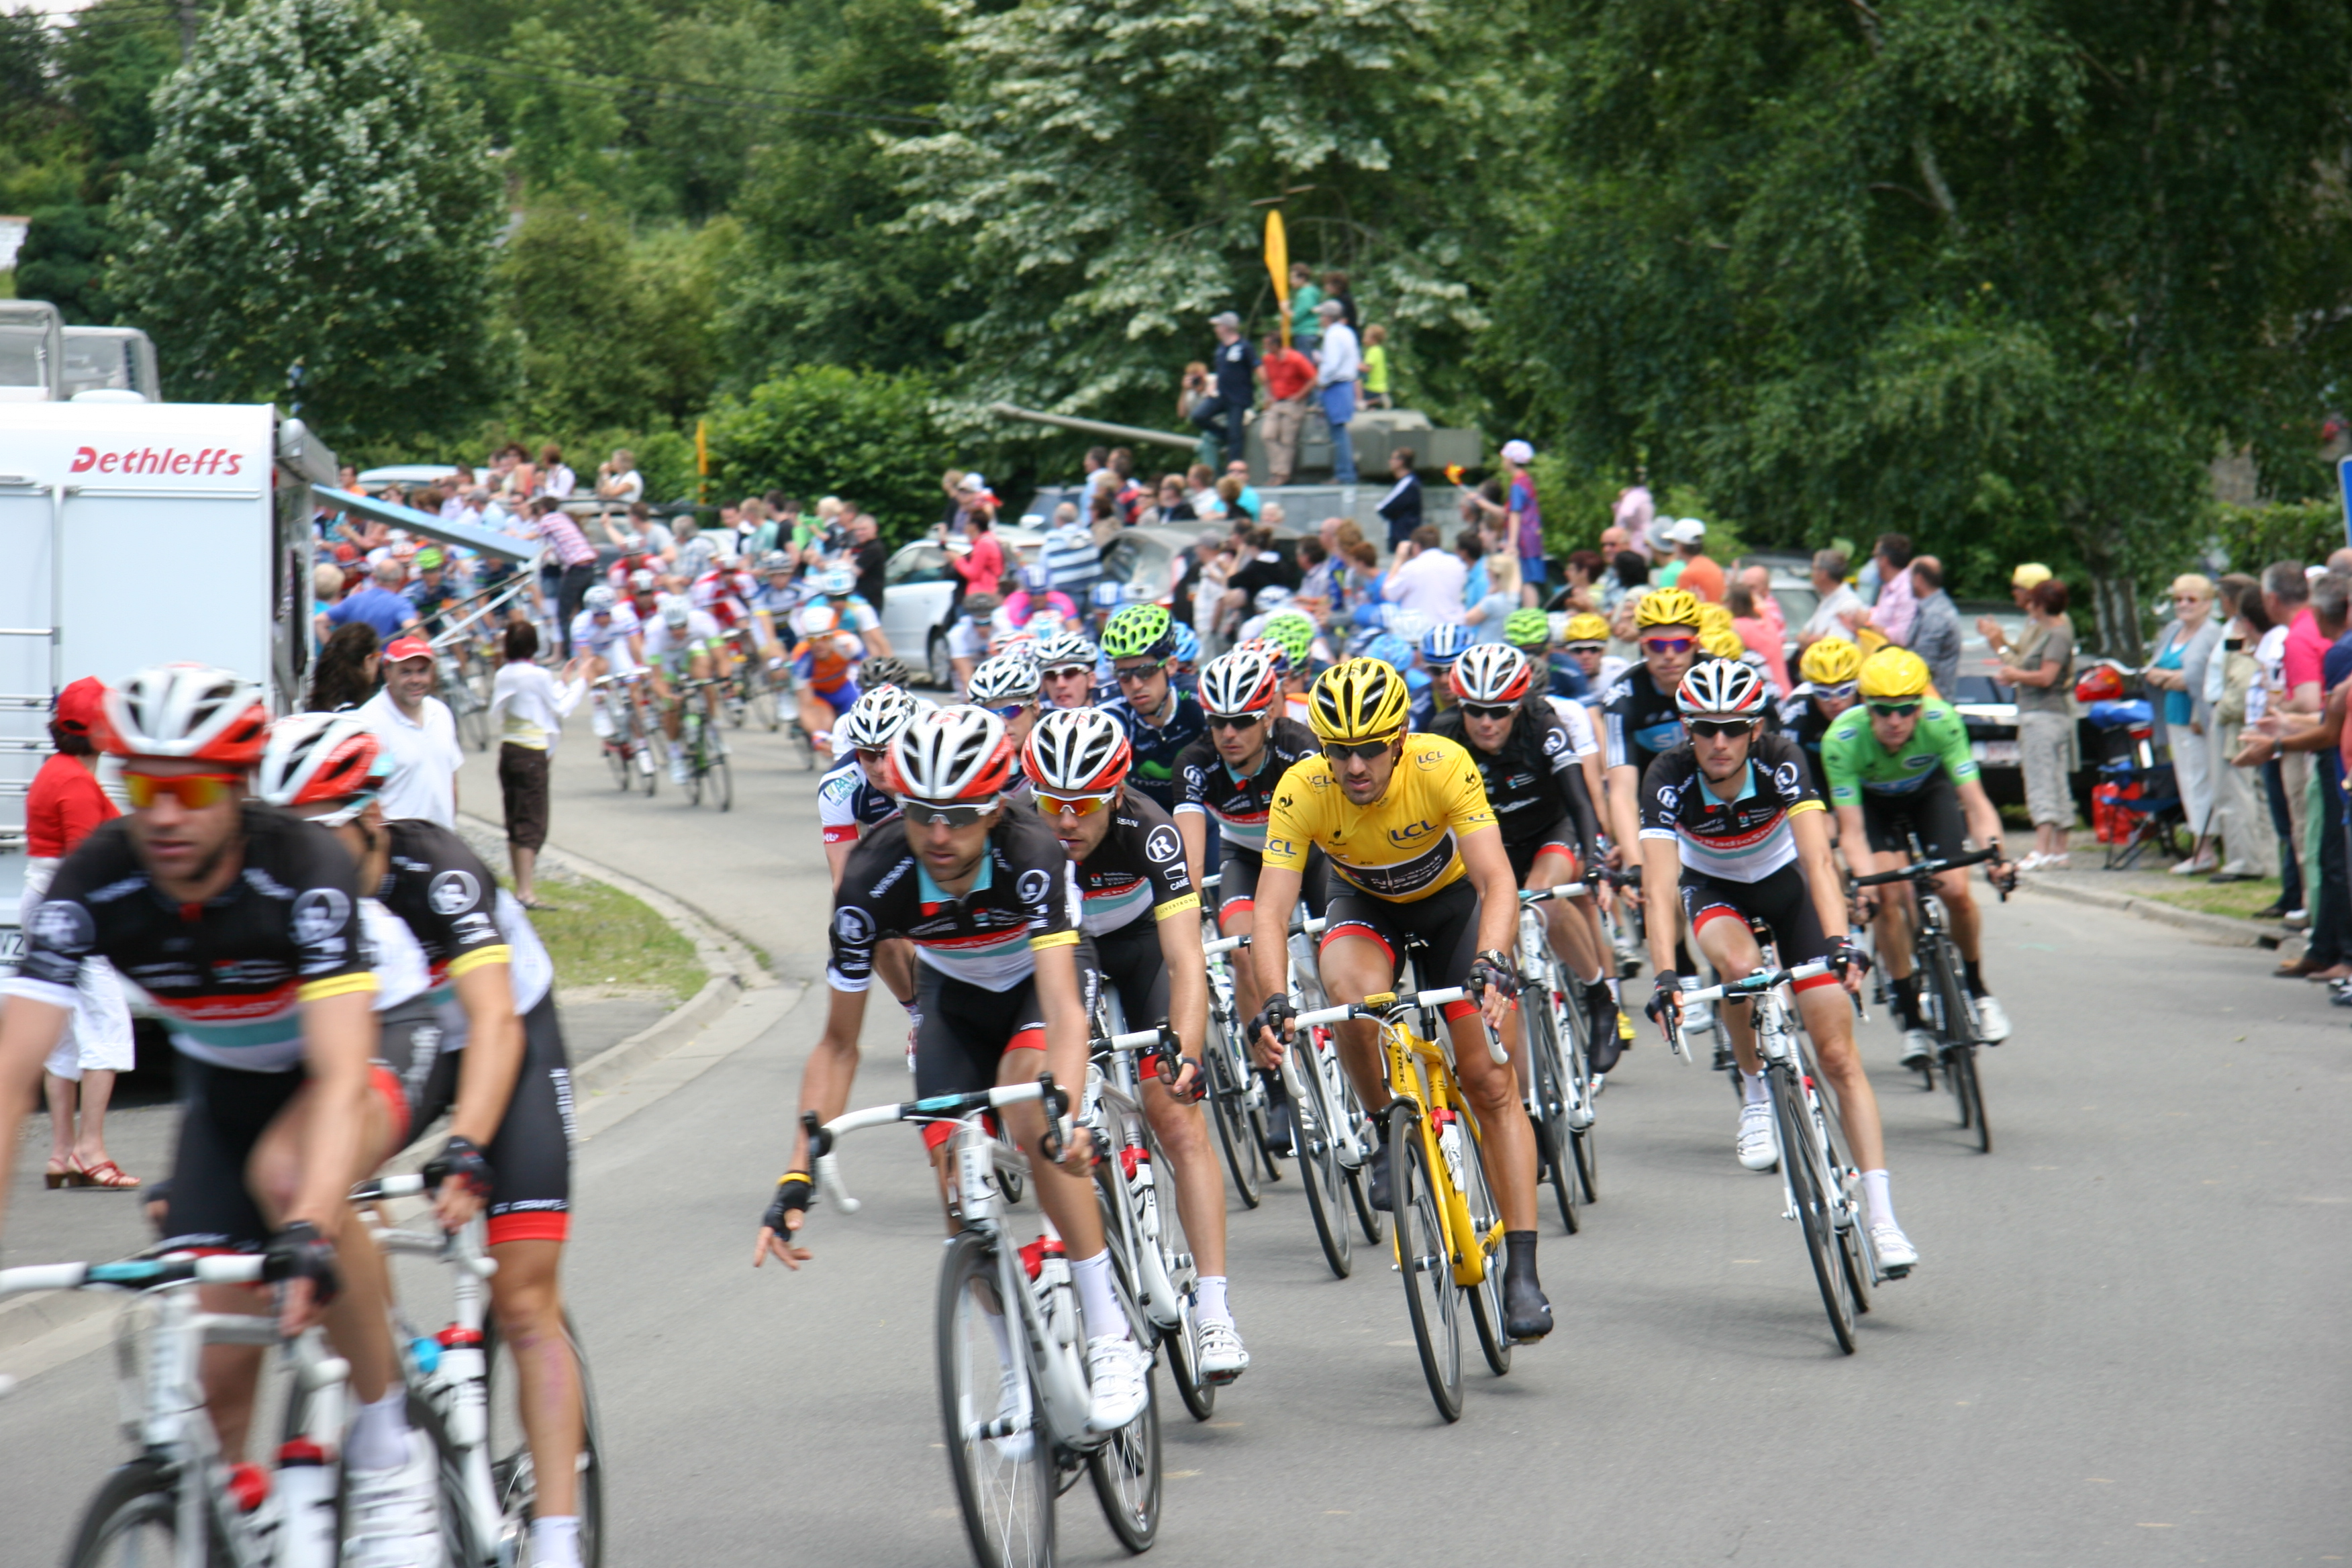 The 2012 Tour de France stage 1 in Hotton, Belgium. Fabian Cancellara in the yellow shirt.